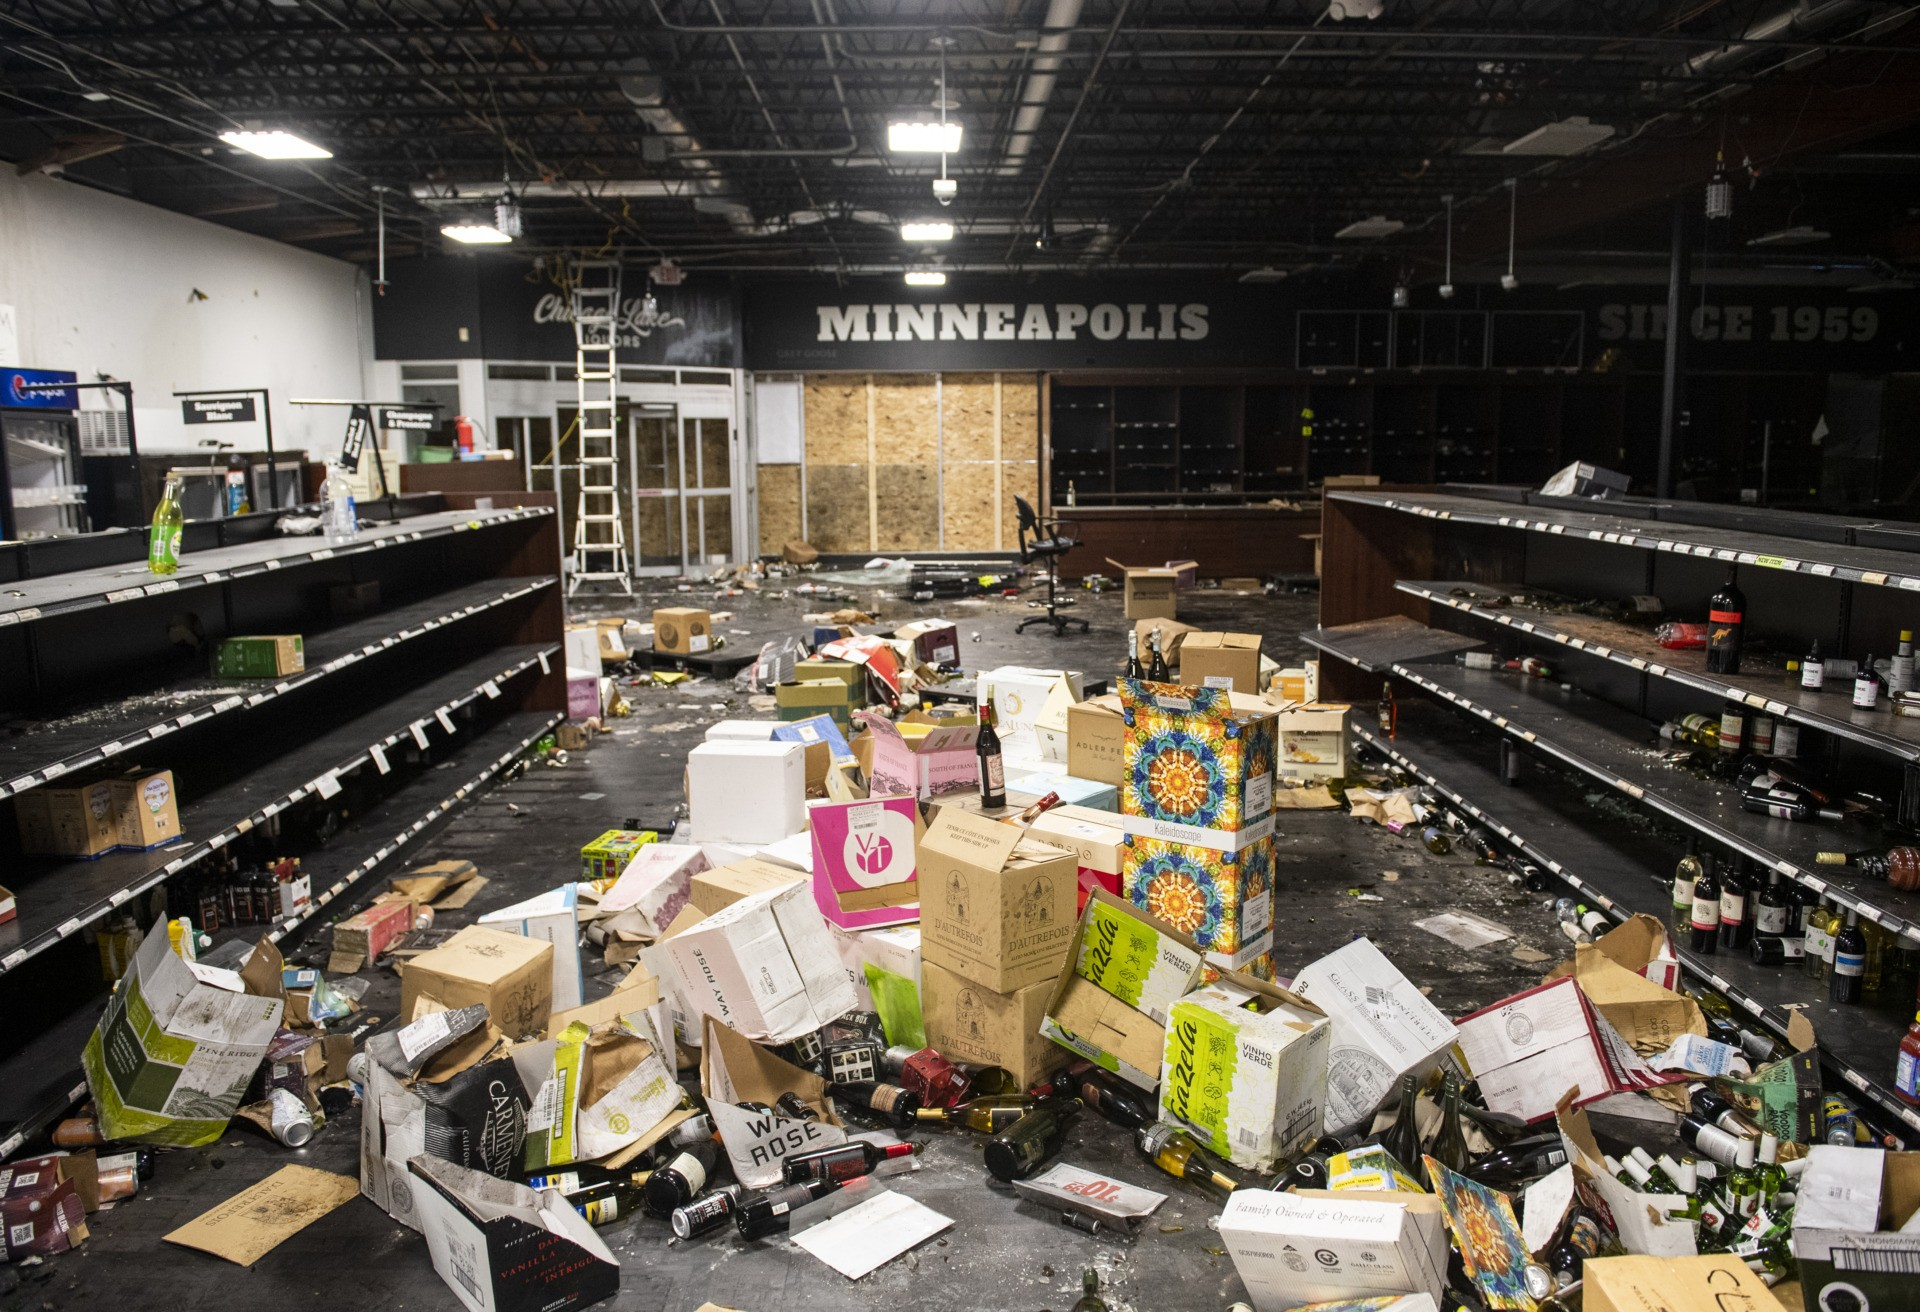 MINNEAPOLIS, MN - JUNE 05: A view of the damage inside Chicago Lake Liquors after it was looted during the protests and riots which followed the death of George Floyd on June 5, 2020 in Minneapolis, Minnesota. All of the merchandise left in the store will be destroyed due to smoke damage. (Photo by Stephen Maturen/Getty Images)